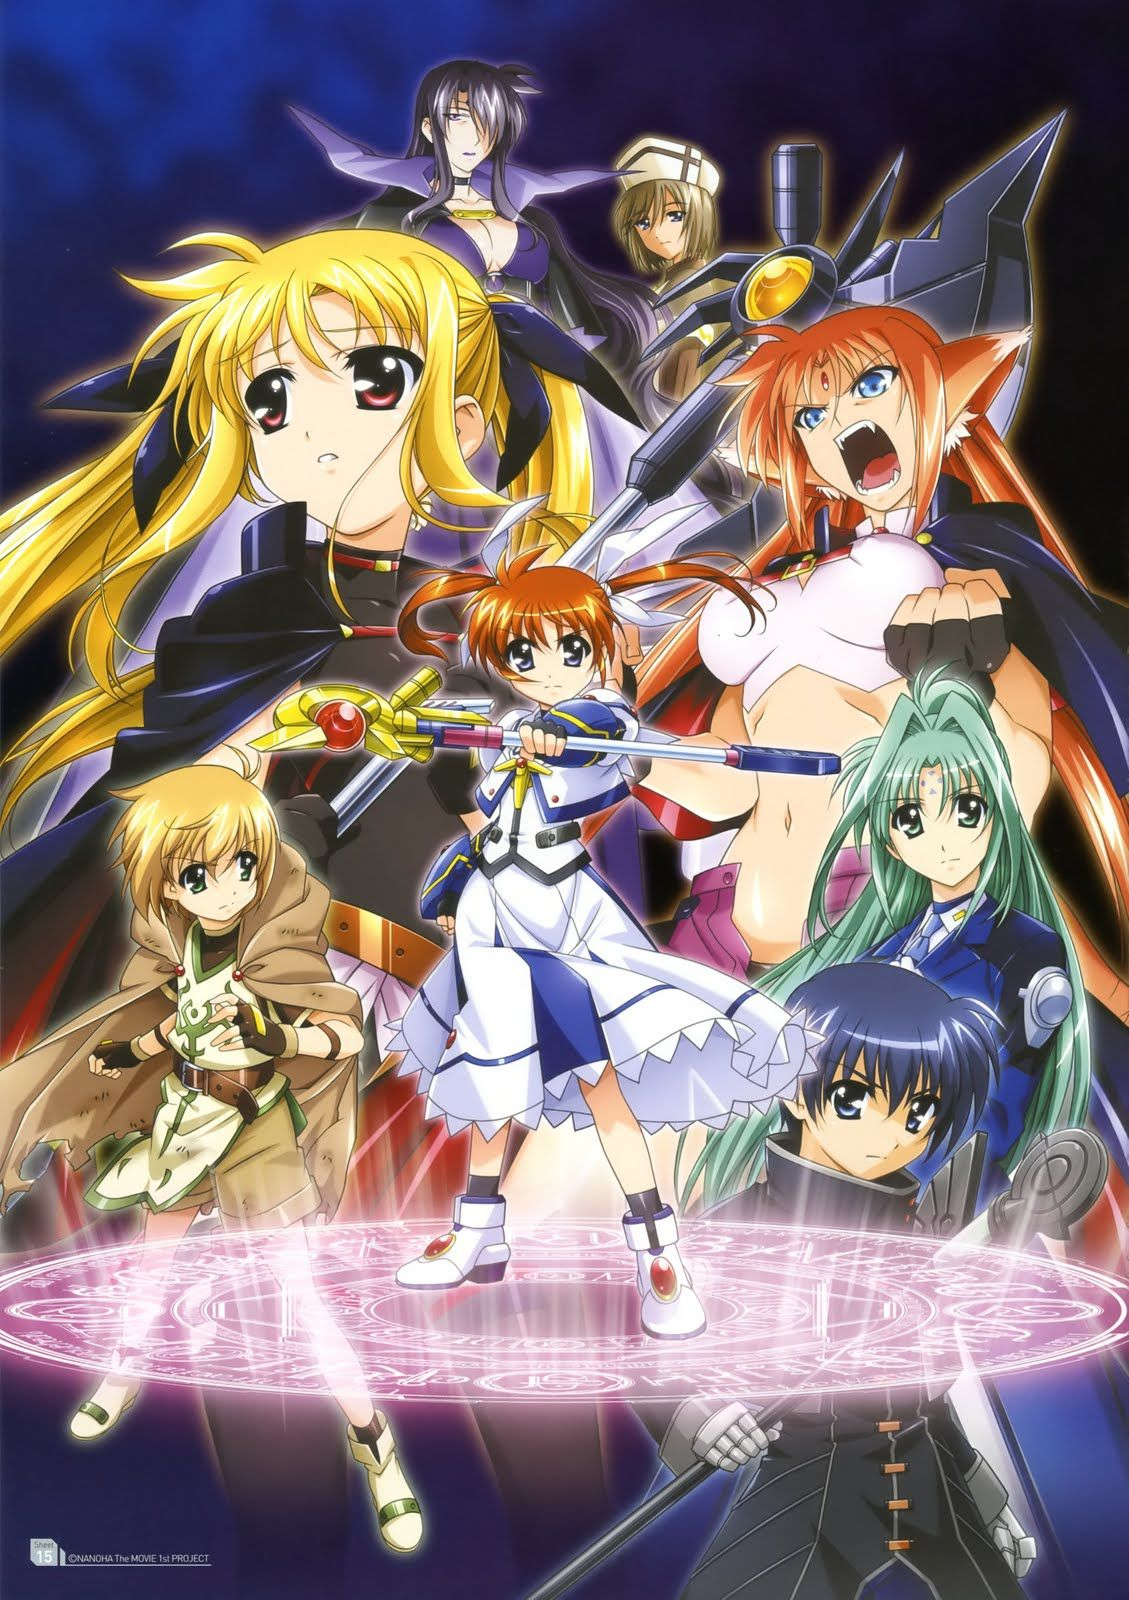 Mahou Shoujo Lyrical Nanoha The Movie 1st Genres Action